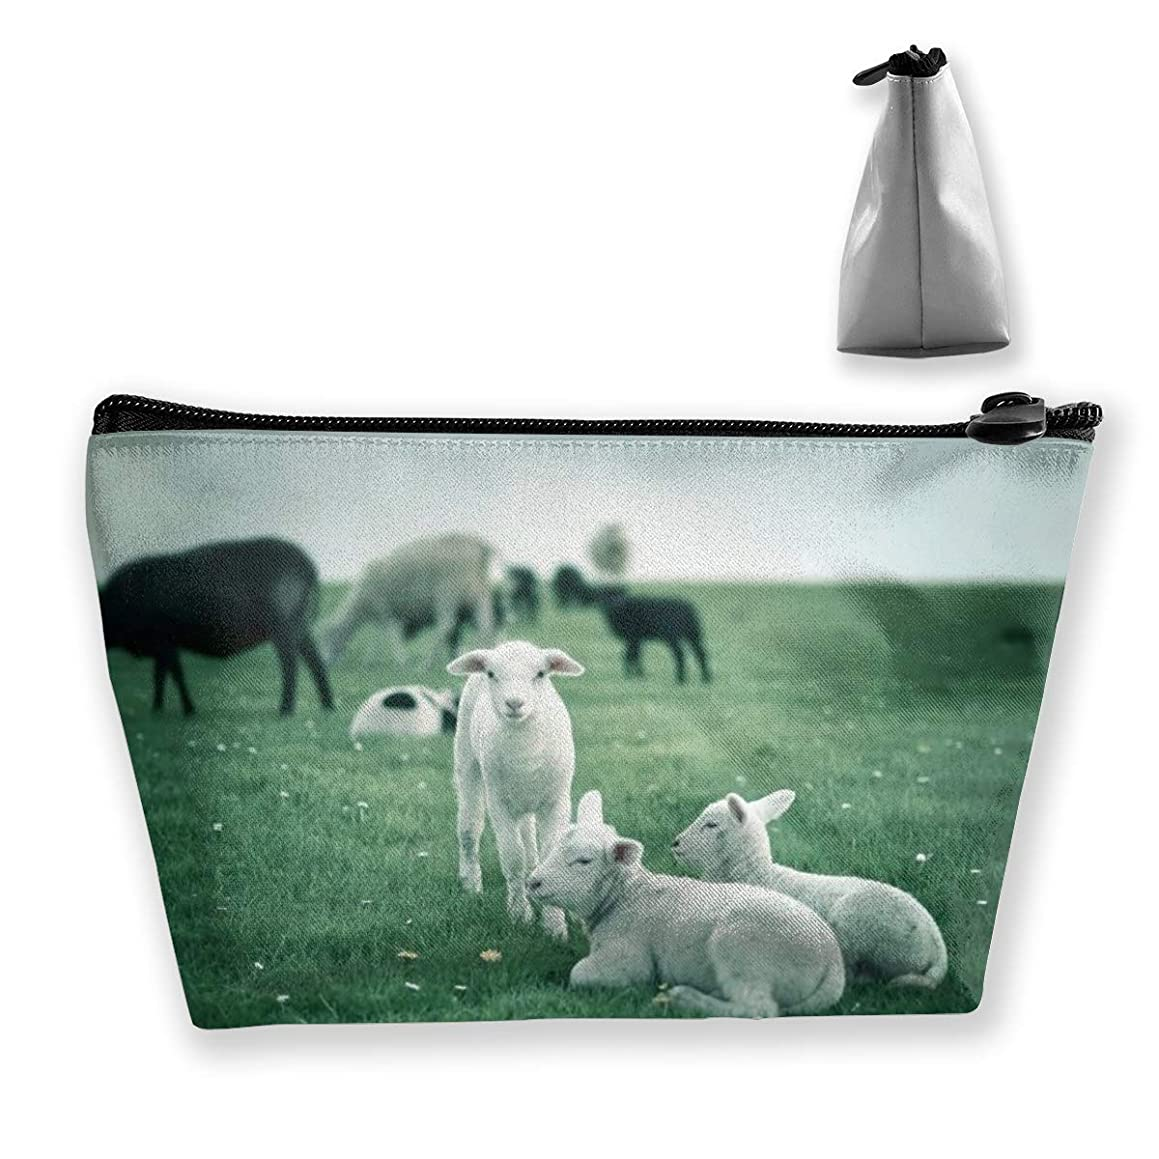 Makeup Bag Cosmetic Sheep Picture Portable Bag Mobile Trapezoidal Storage Bag Travel Bags With Zipper